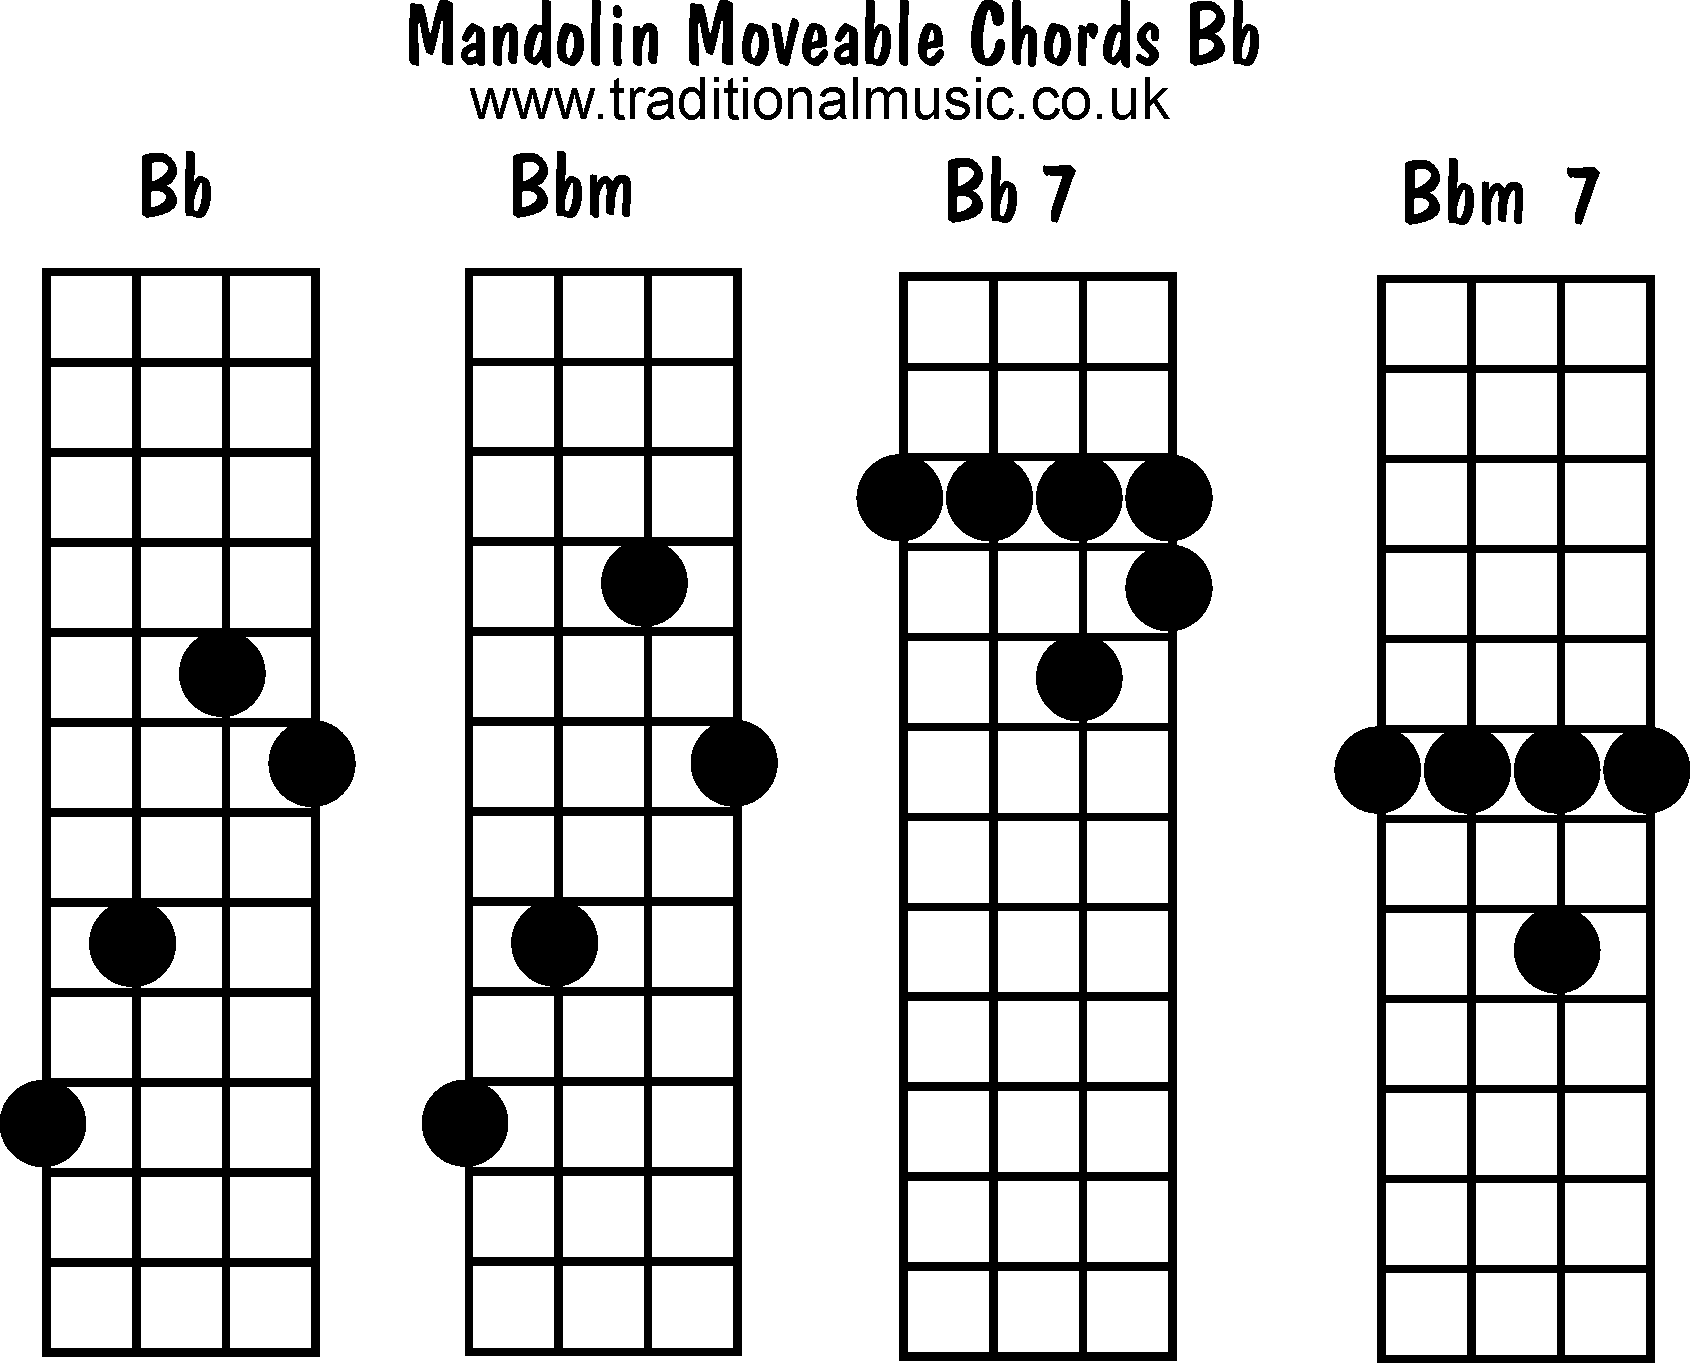 Mandolin chords moveable - Bb, Bbm, Bb7, Bbm7